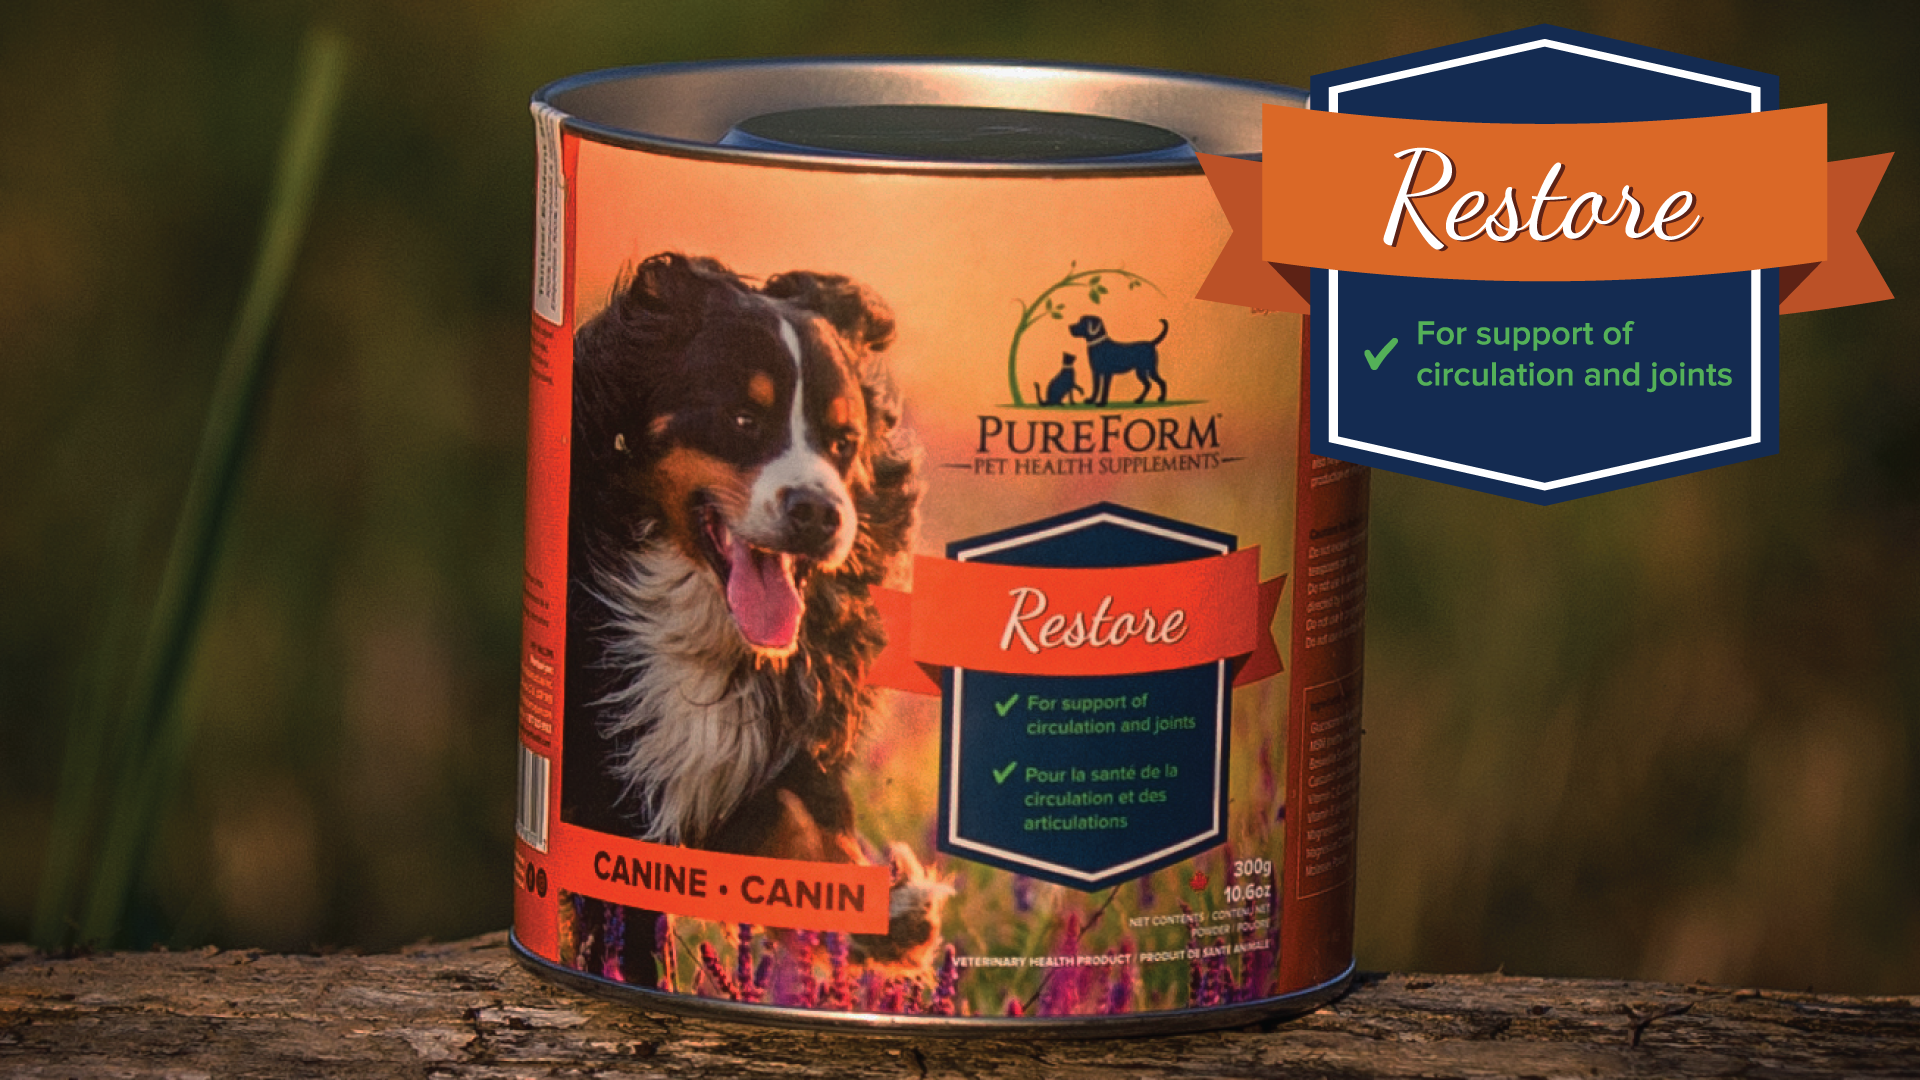 PureForm Pet Health Restore supplements for joint support